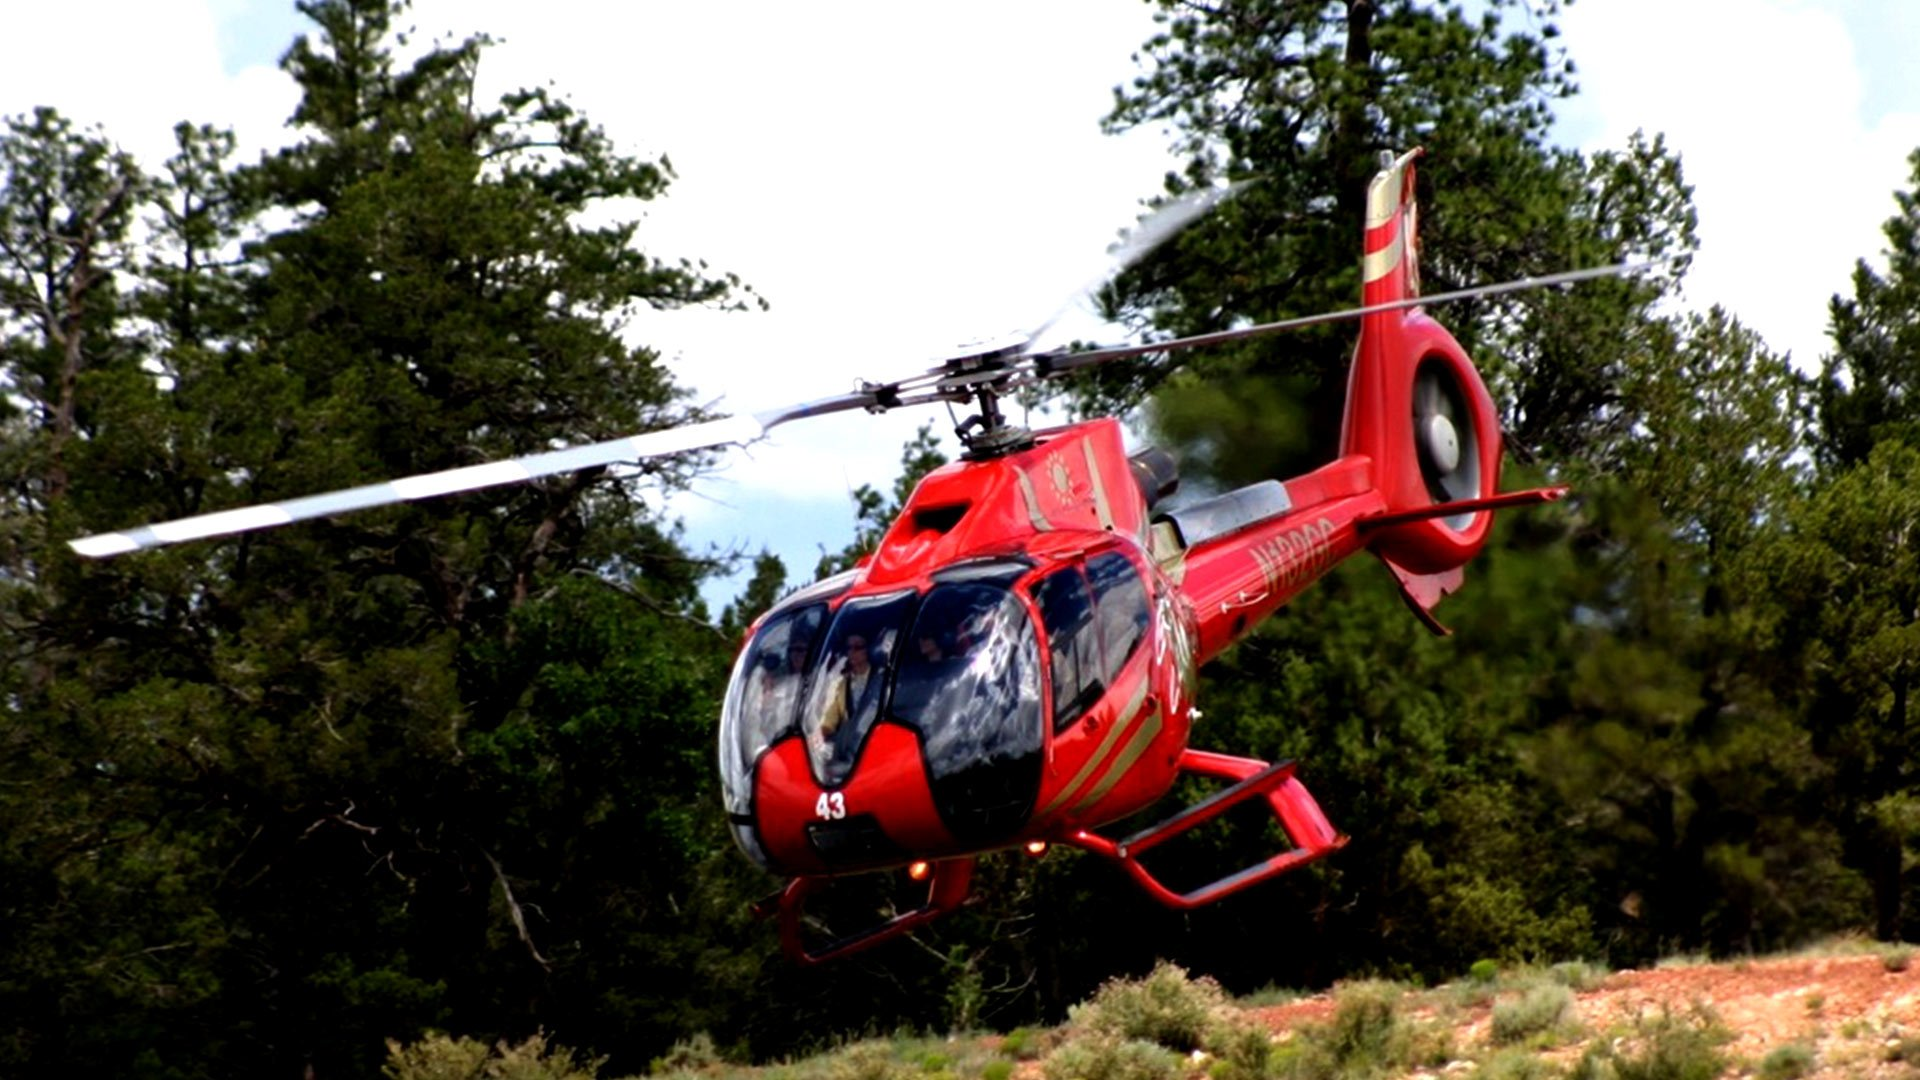 A red helicopter lands at the Grand Canyon with a forest in the background.